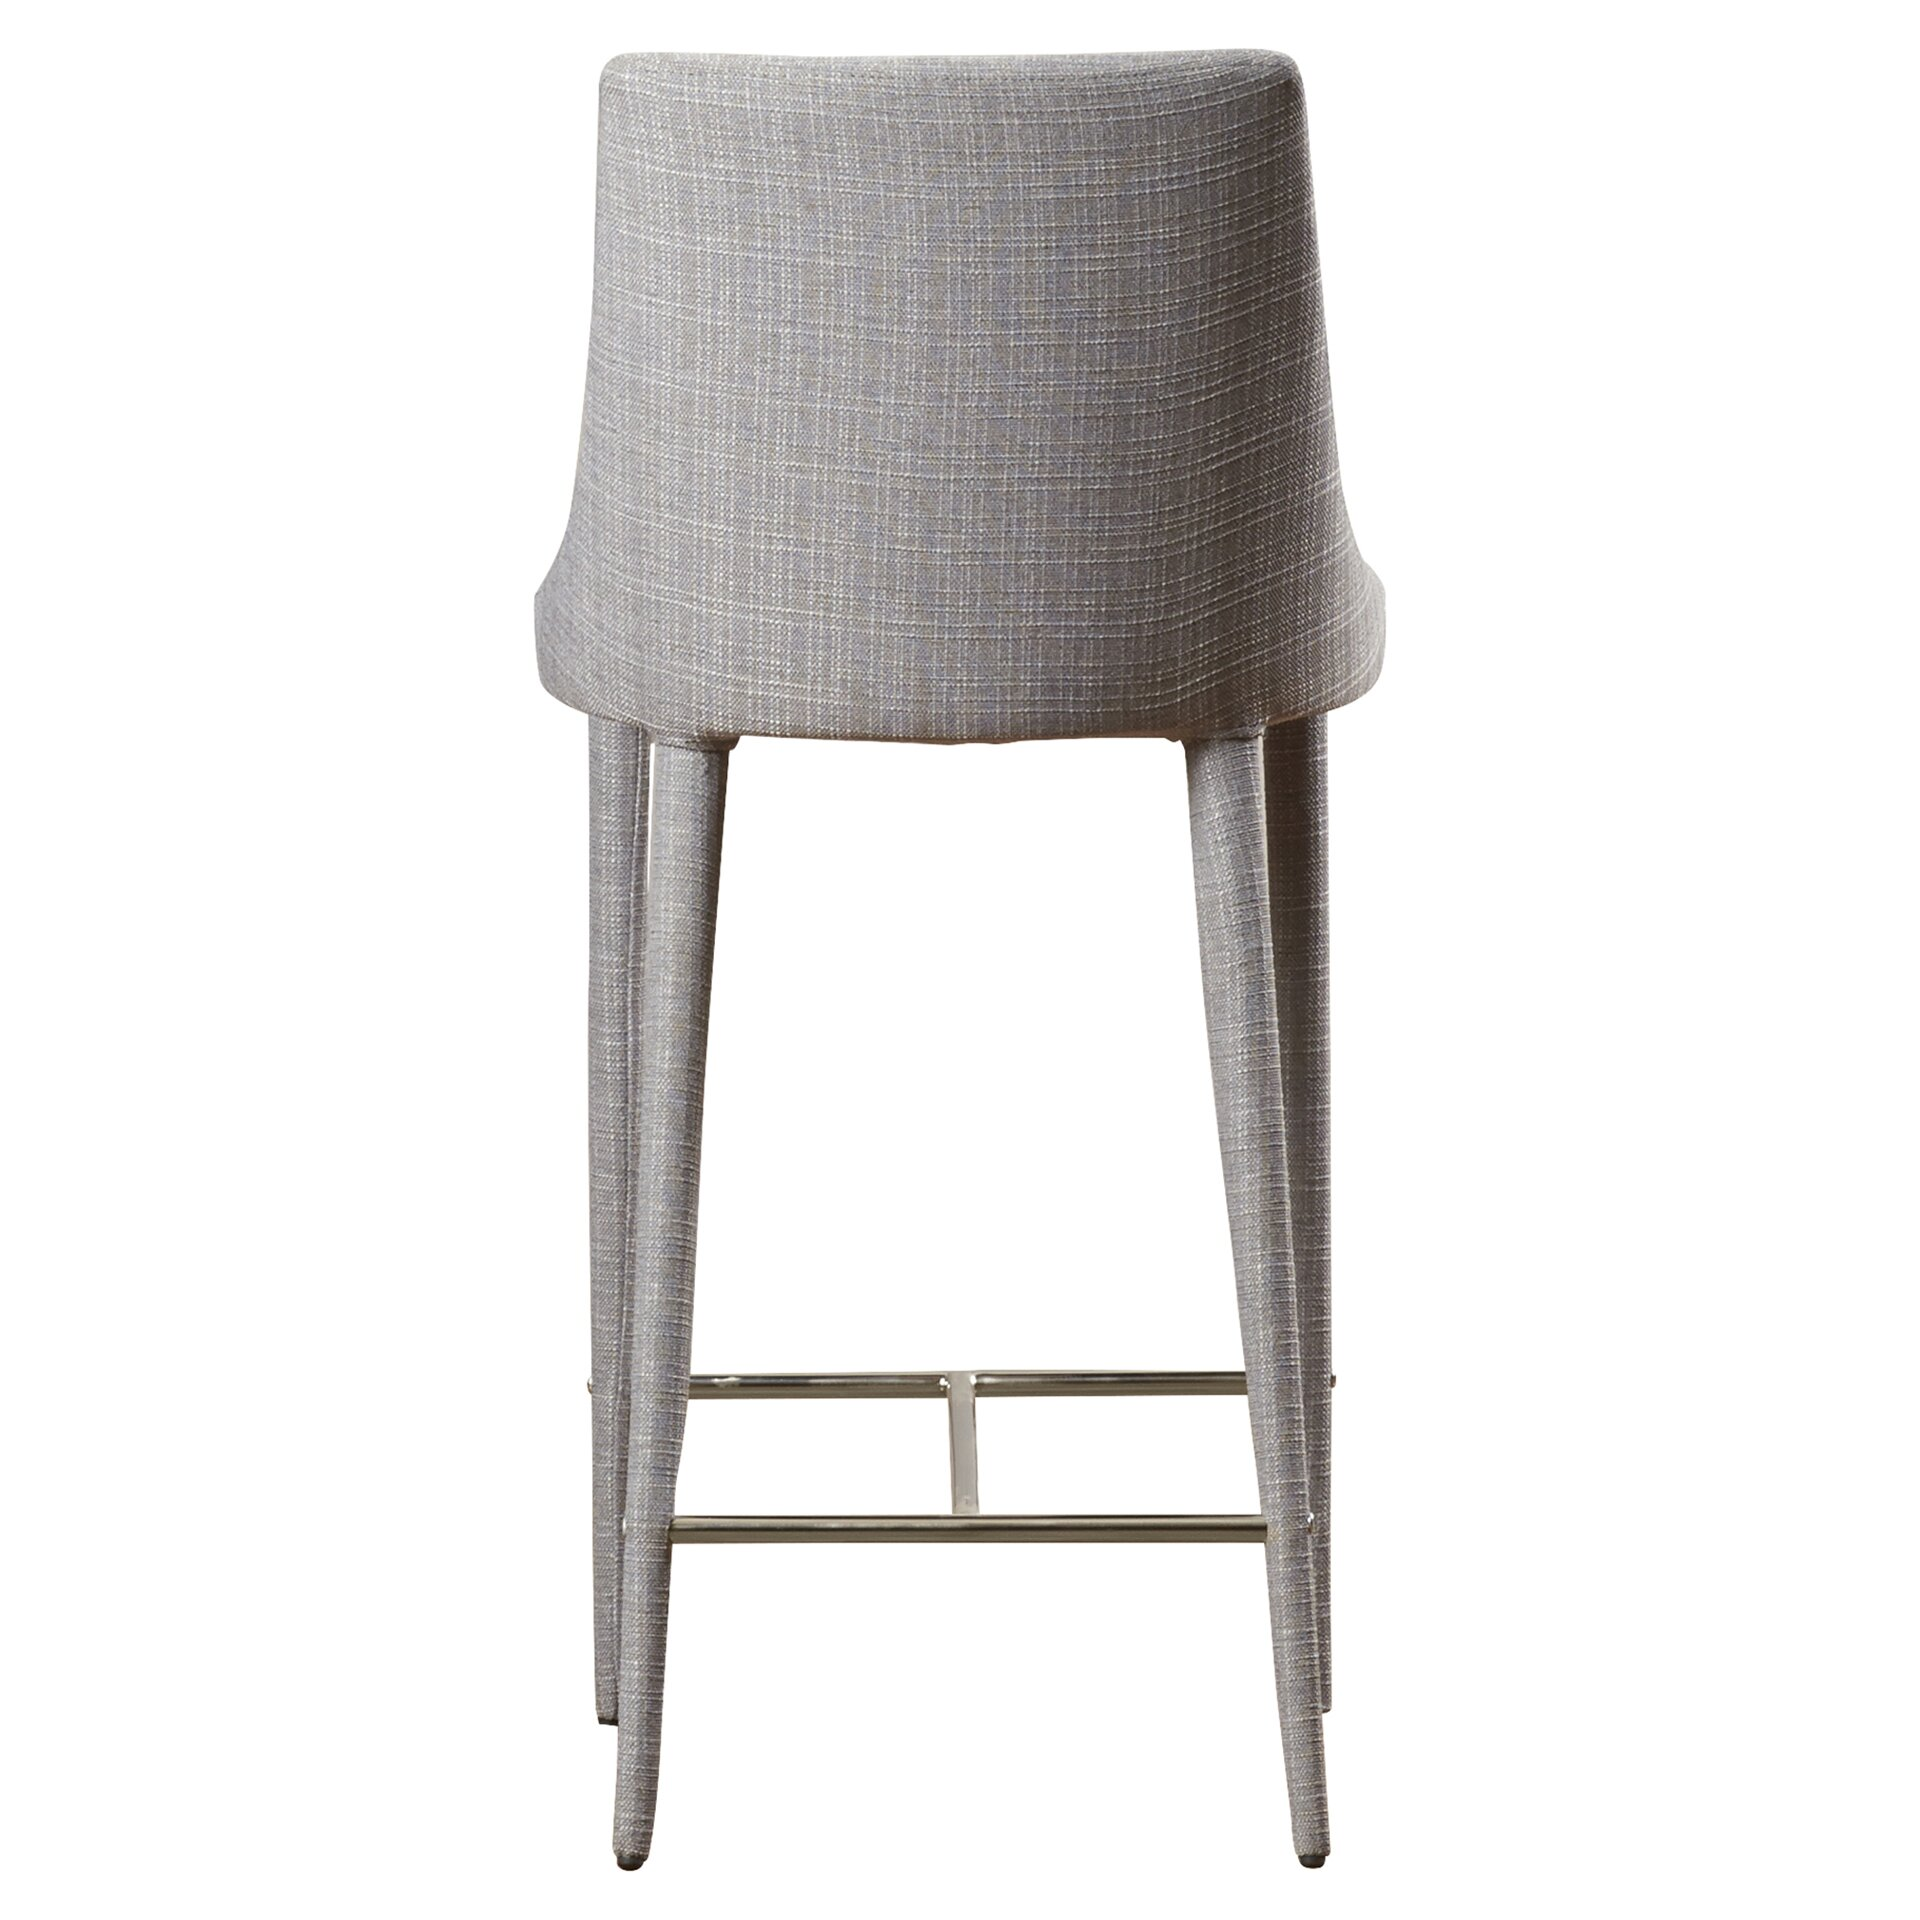 moses 26 39 39 bar stool with cushion joss main